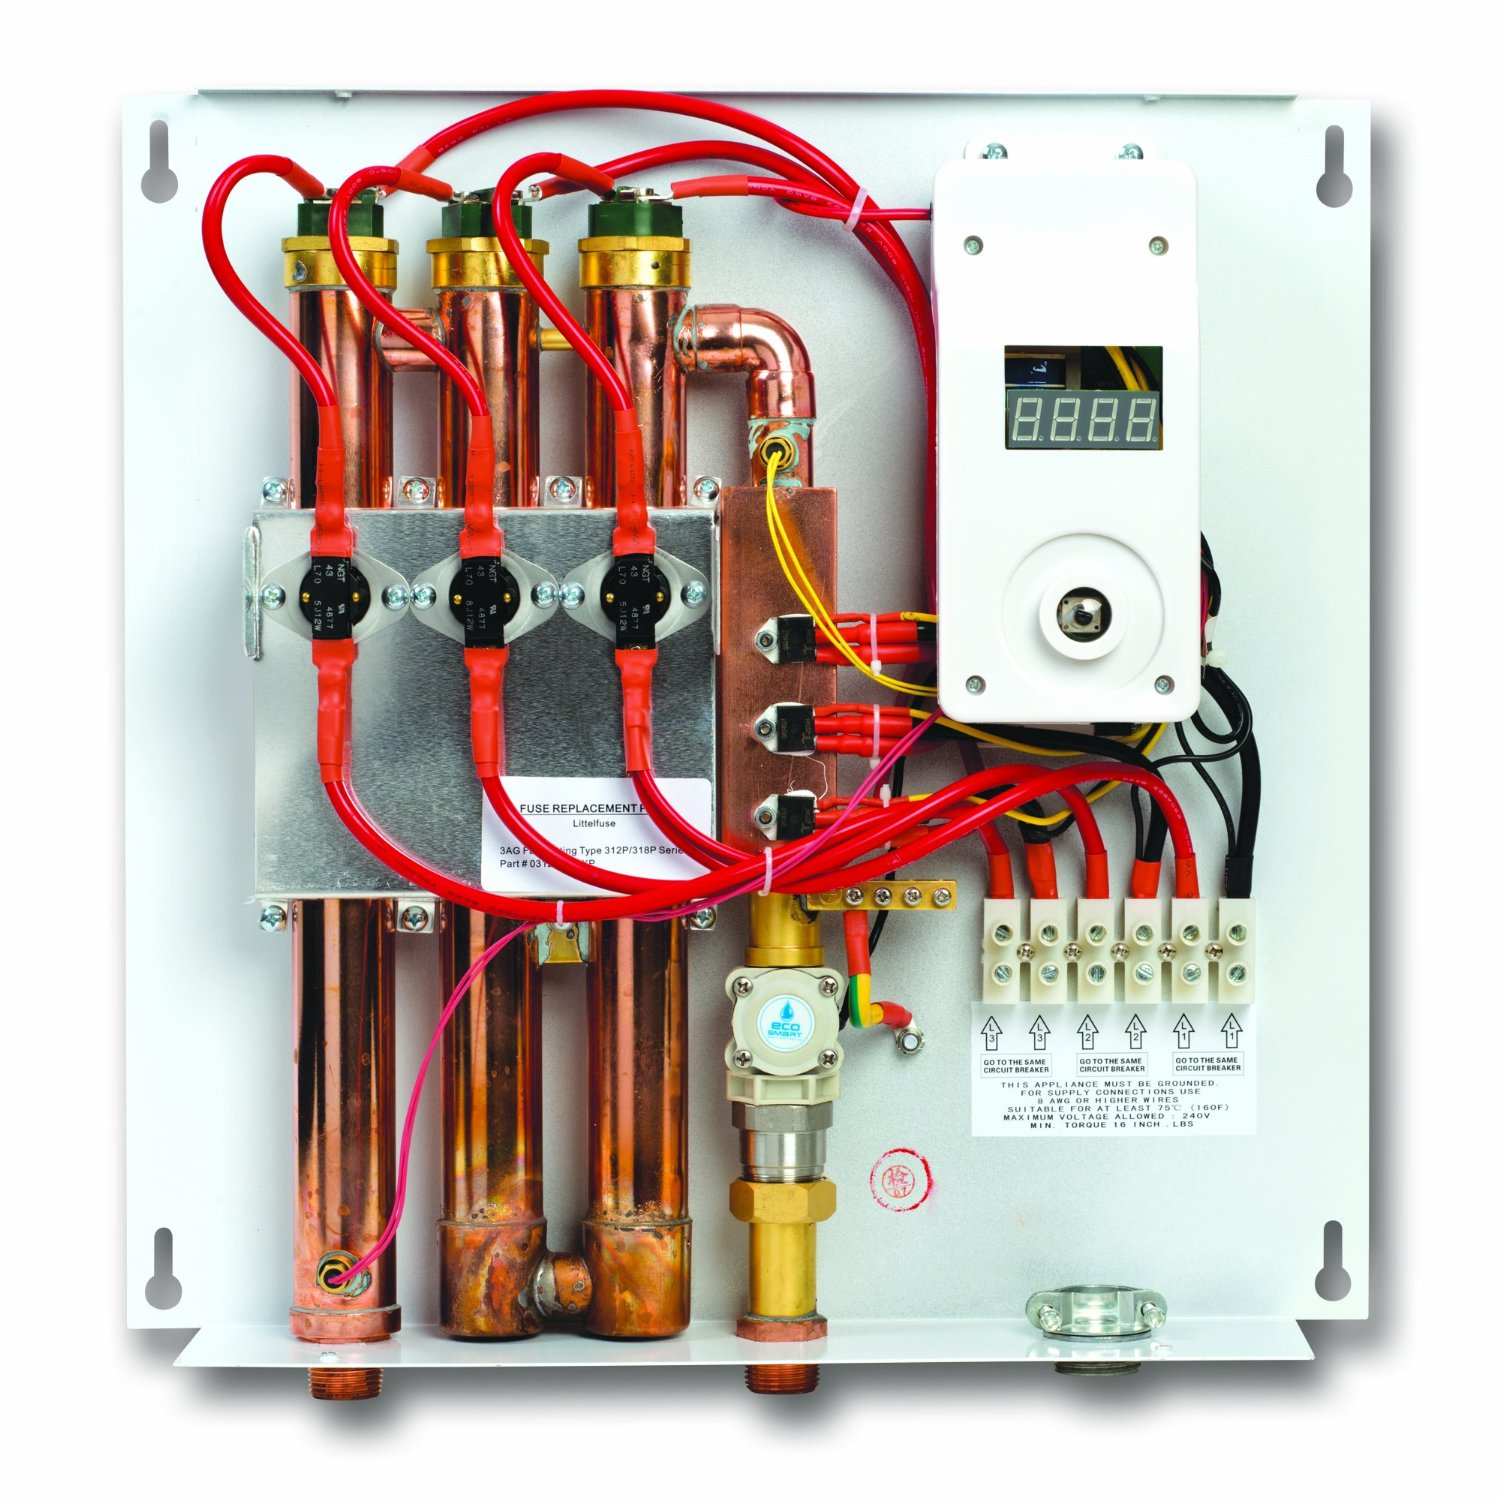 Ecosmart ECO 27 Electric Tankless Water Heater 2 ecosmart eco 27 electric tankless water heater reviews rheem rte 18 wiring diagram at eliteediting.co